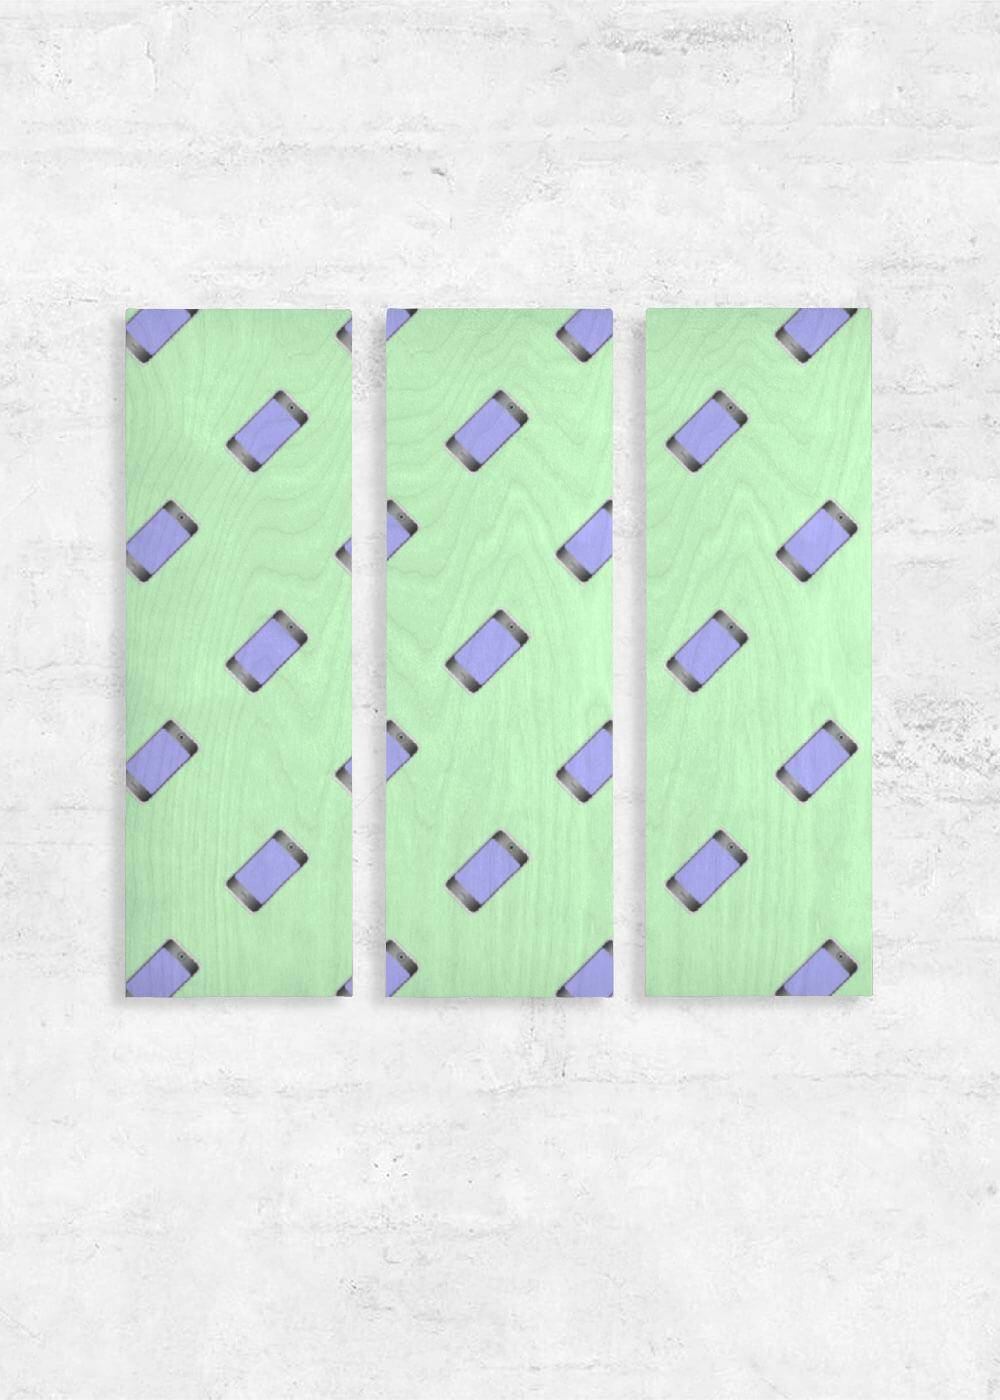 VIDA Wood Wall Art - Set of 3 - Mobile Phones On Green in Green by VIDA Original Artist  - Size: One Size